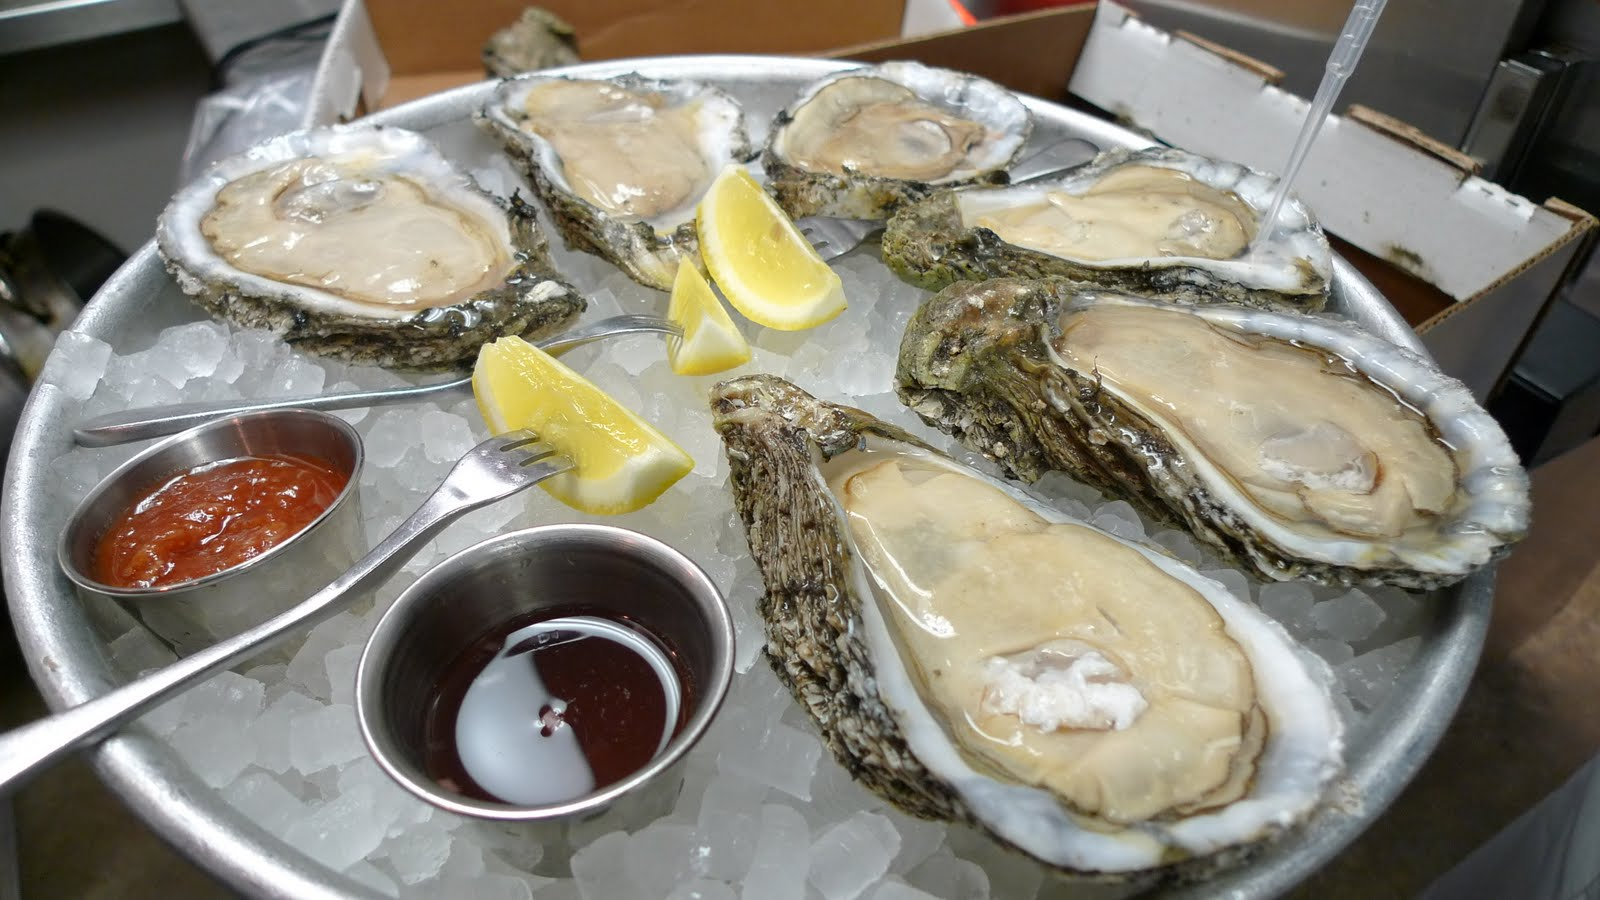 Live Oysters On Beach